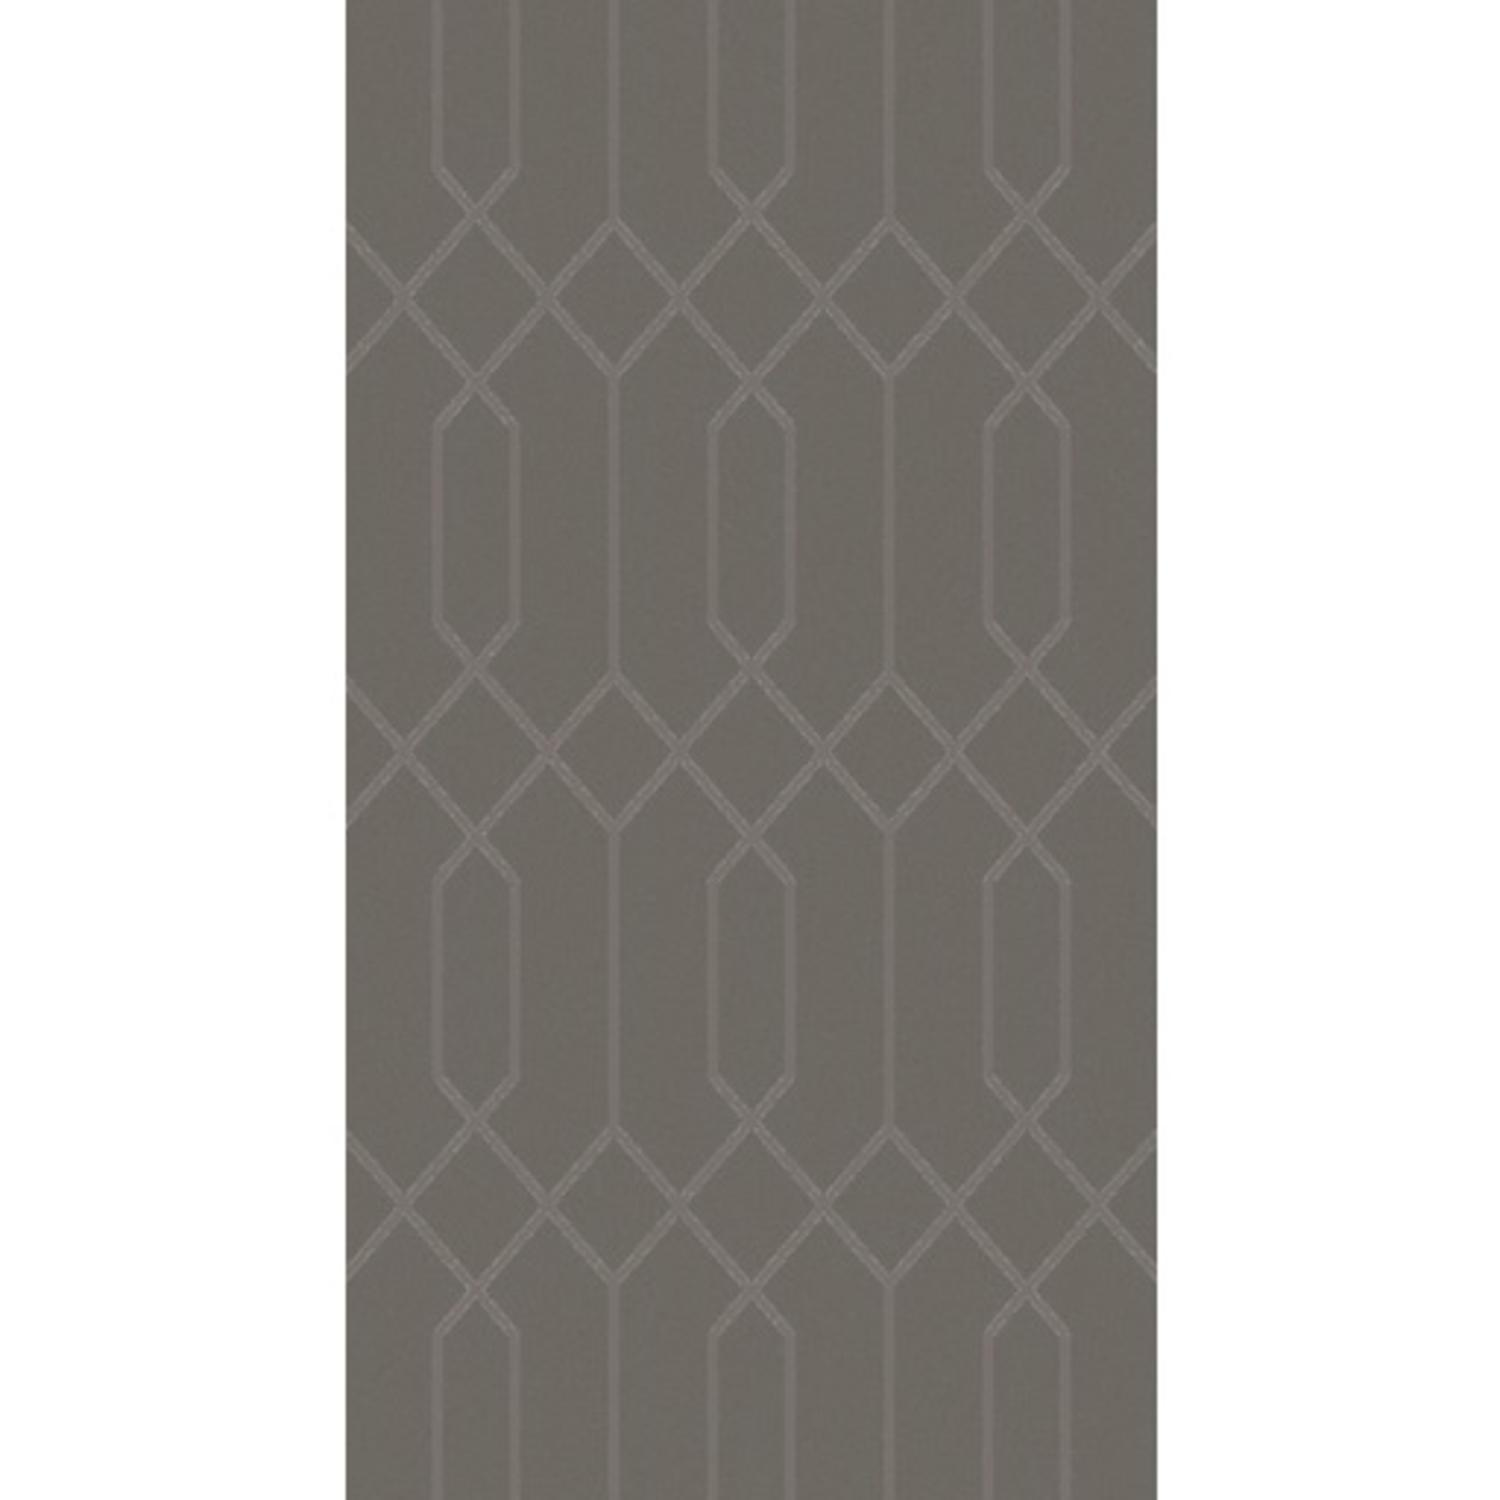 9' x 13' Textured Lines Stone Gray Hand Knotted Wool Area Throw Rug